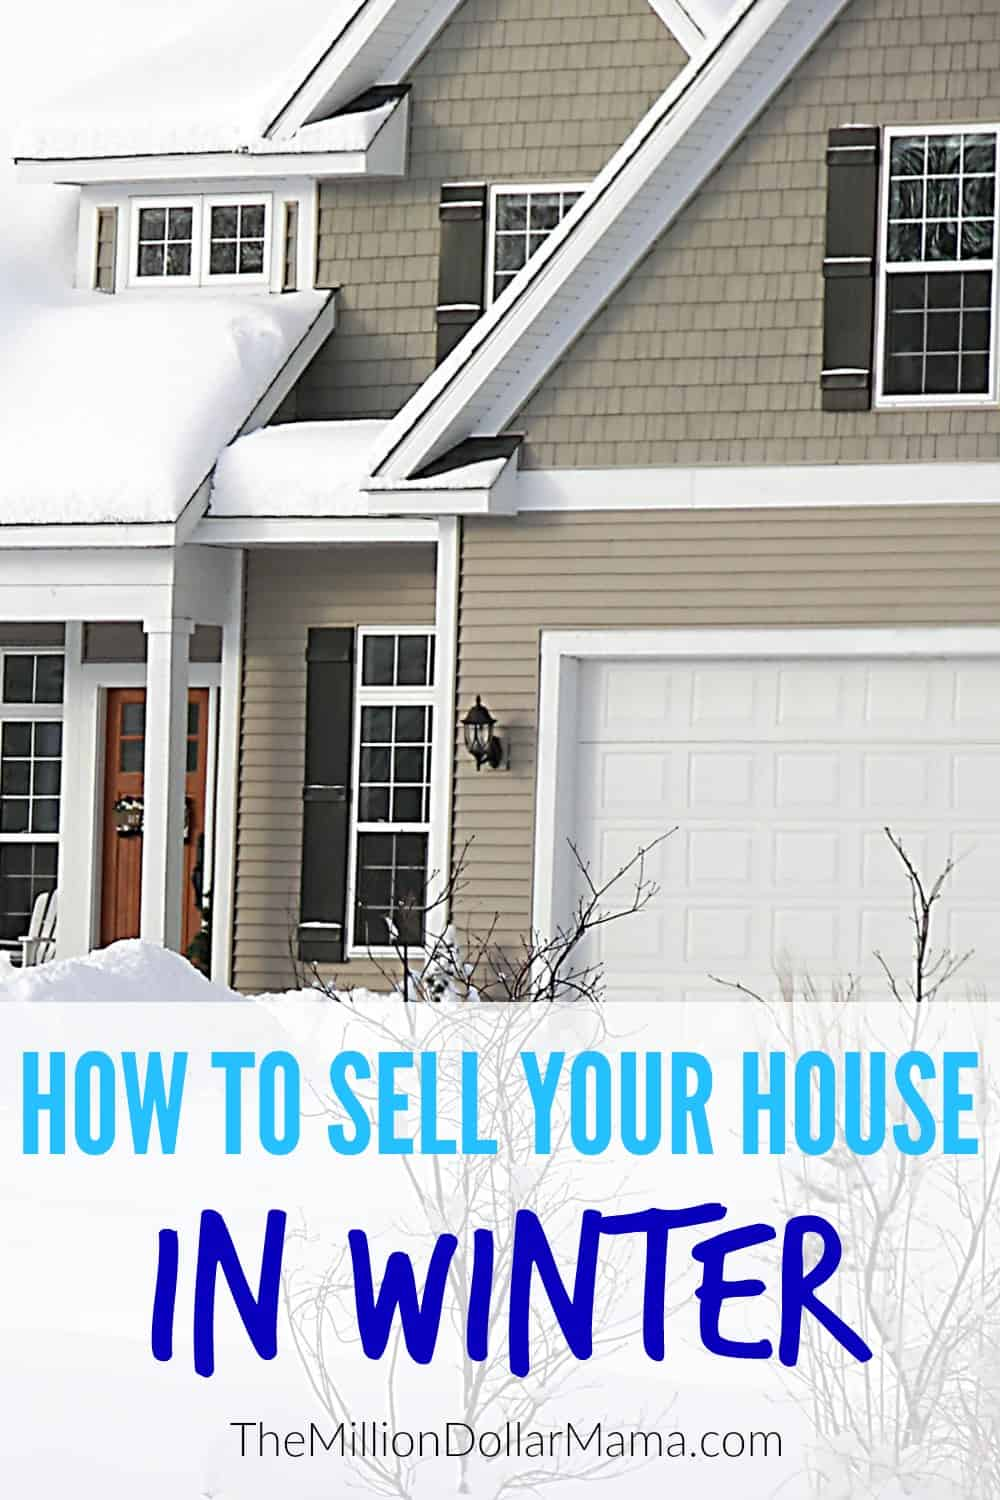 How to sell a house in winter - these winter home selling tips will help you embrace a notoriously difficult time of year and help get your house sold!